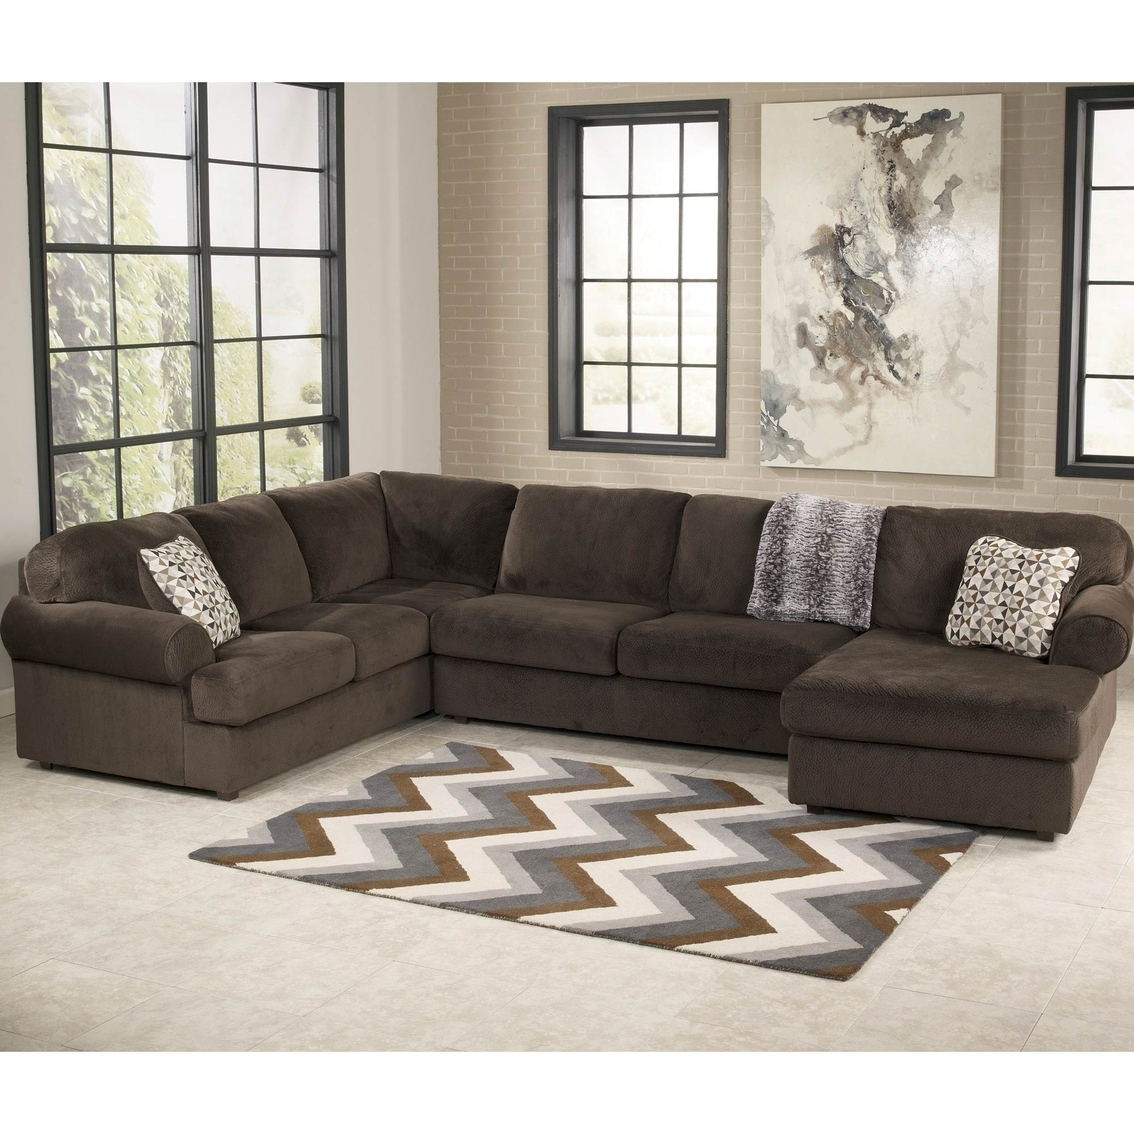 Best And Newest 10X8 Sectional Sofas Throughout Brown Sectional Living Room (View 7 of 20)